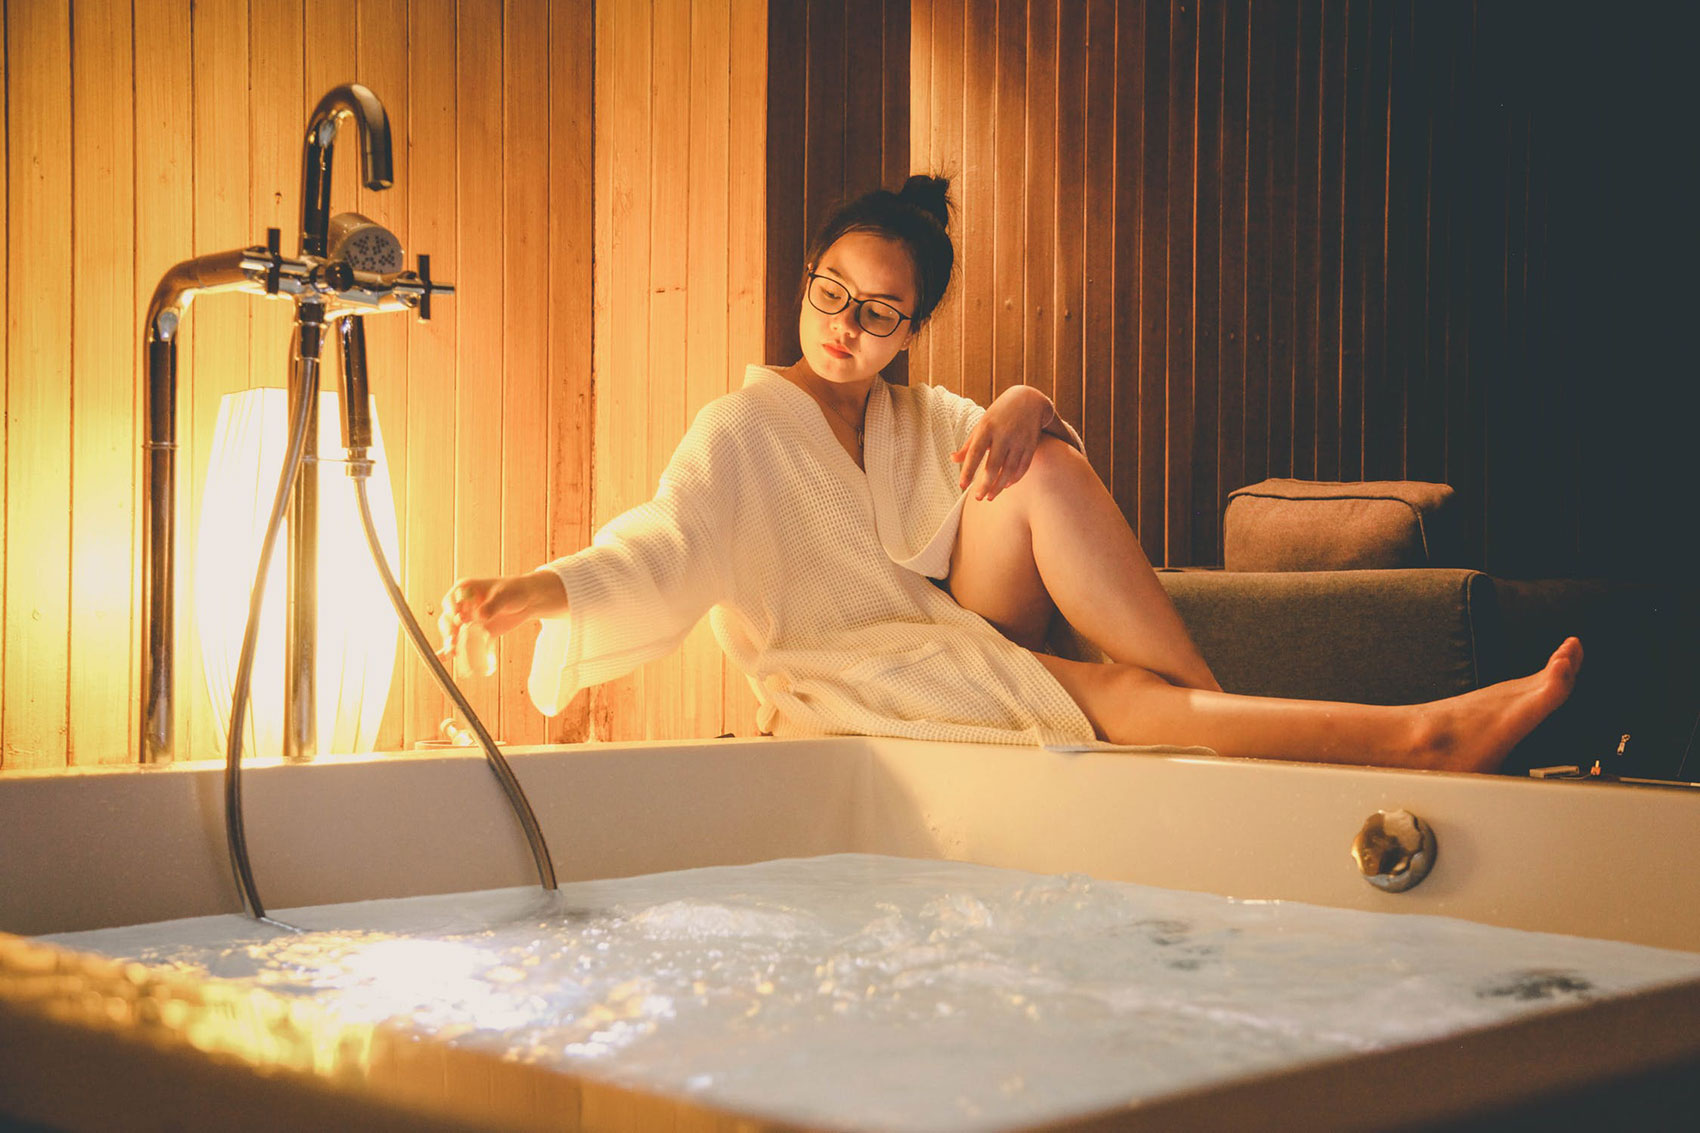 How to Save and Earn Money with Your Own Home Spa